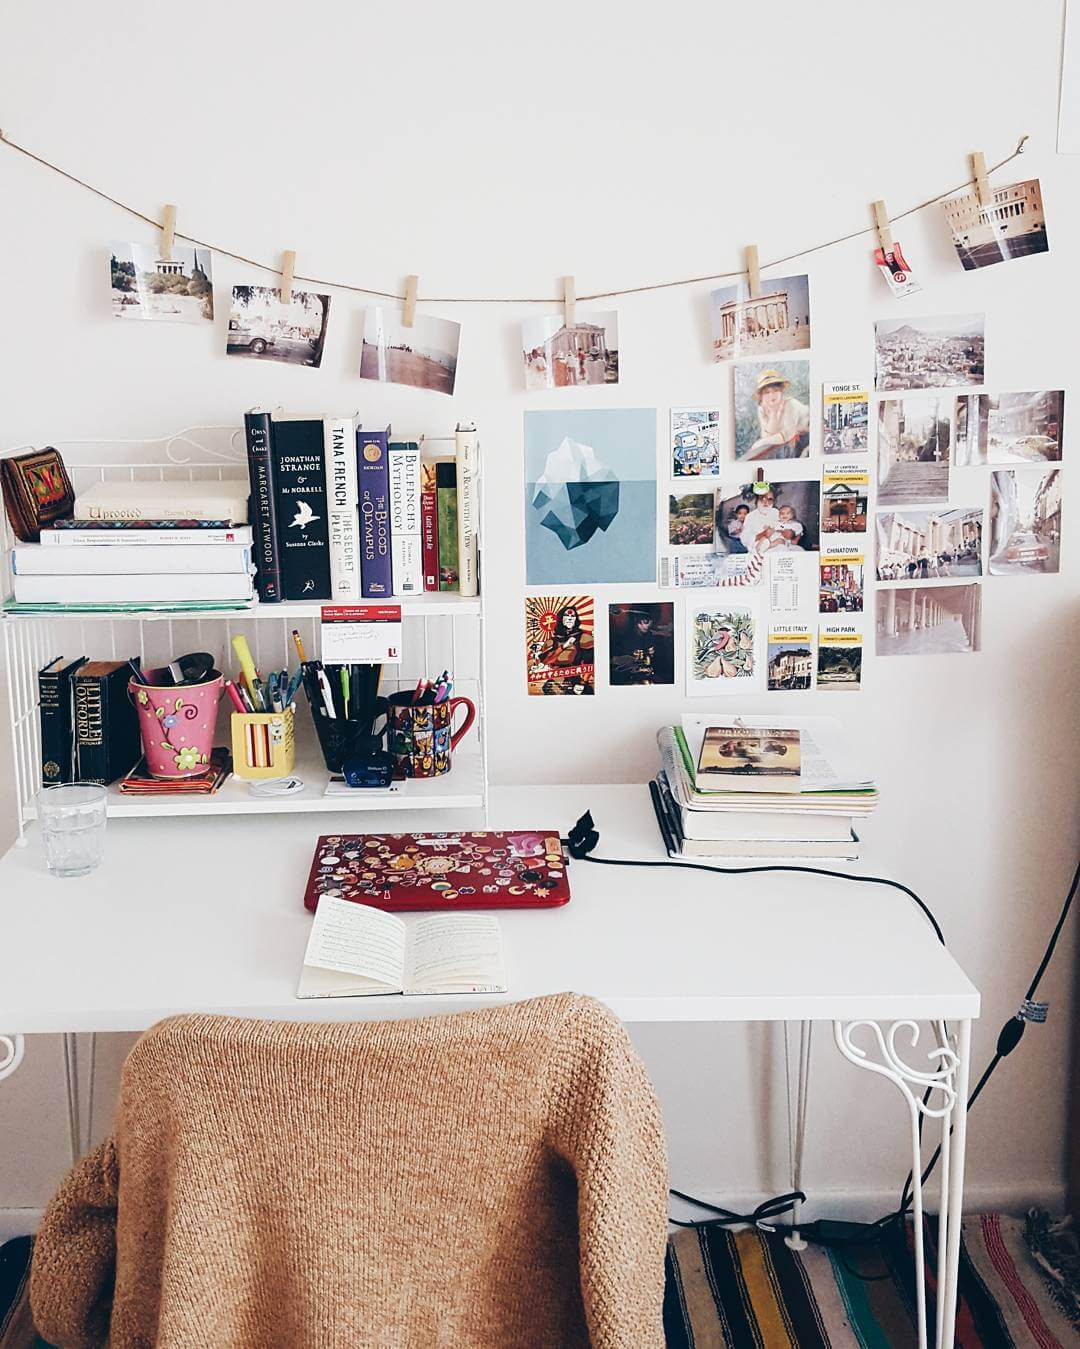 Dorm Room Style: Easy as ABC | LinenMe News